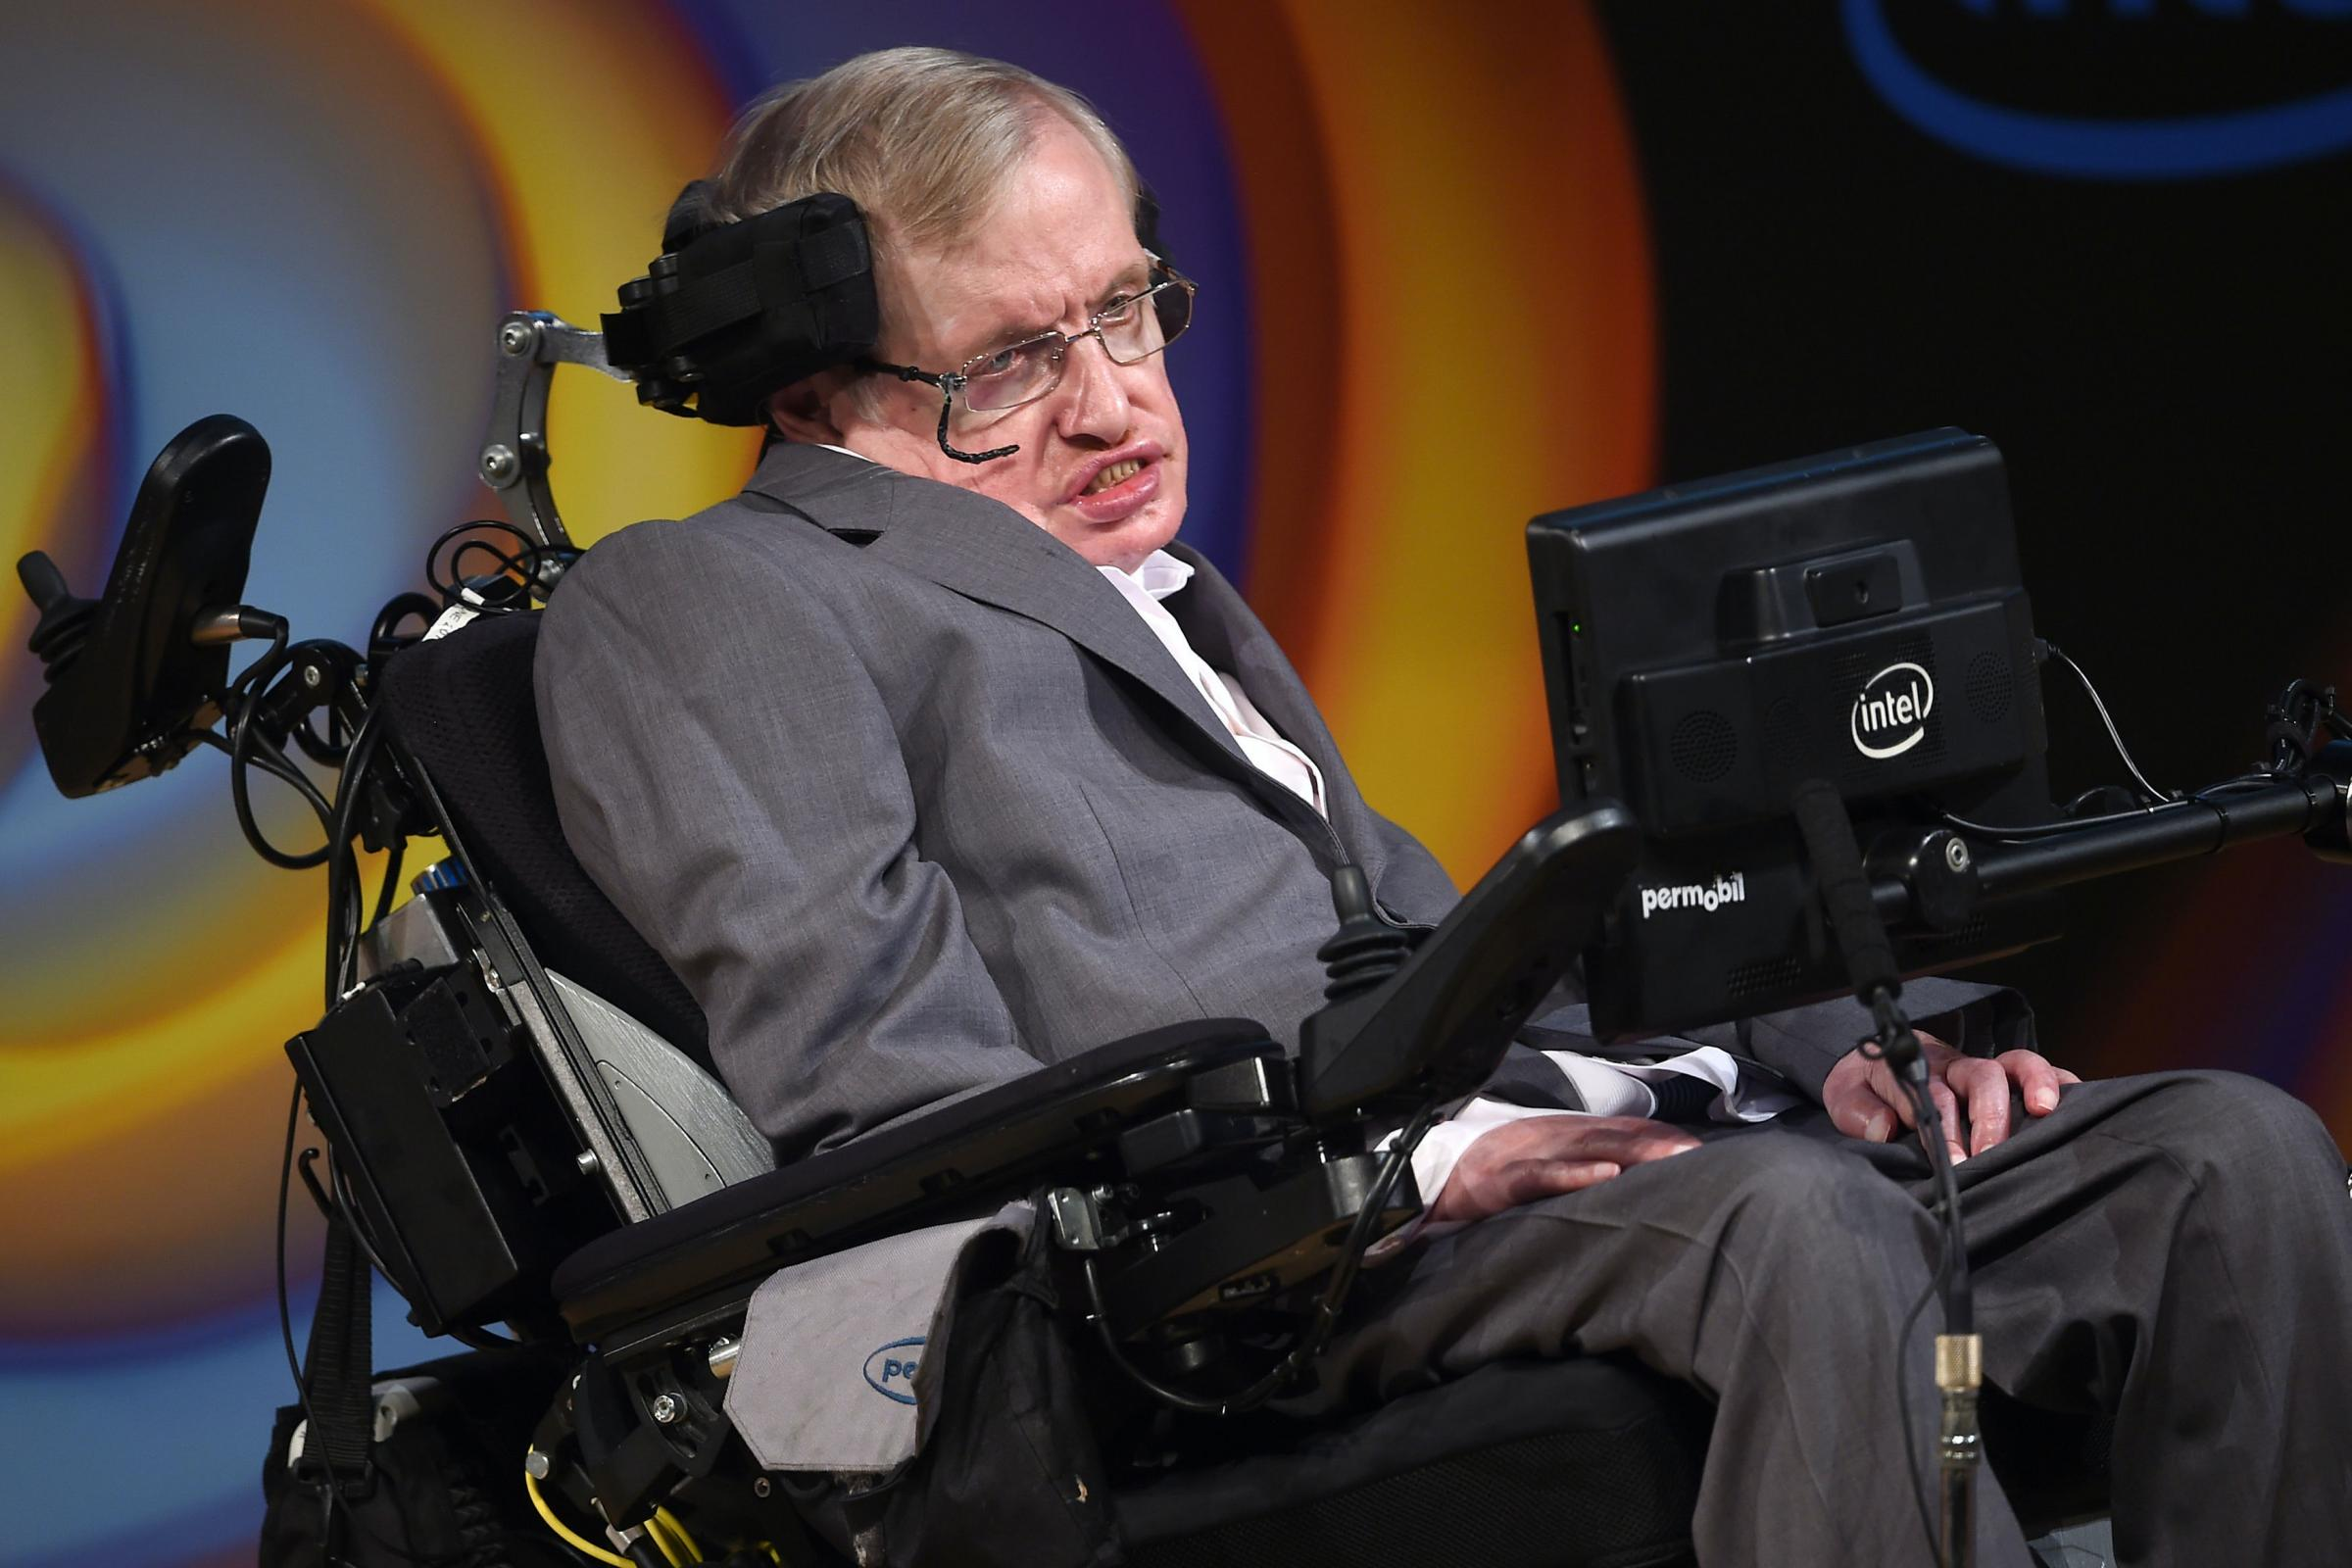 Stephen Hawking's ventilator donated to NHS to help coronavirus patients - Dunfermline Press